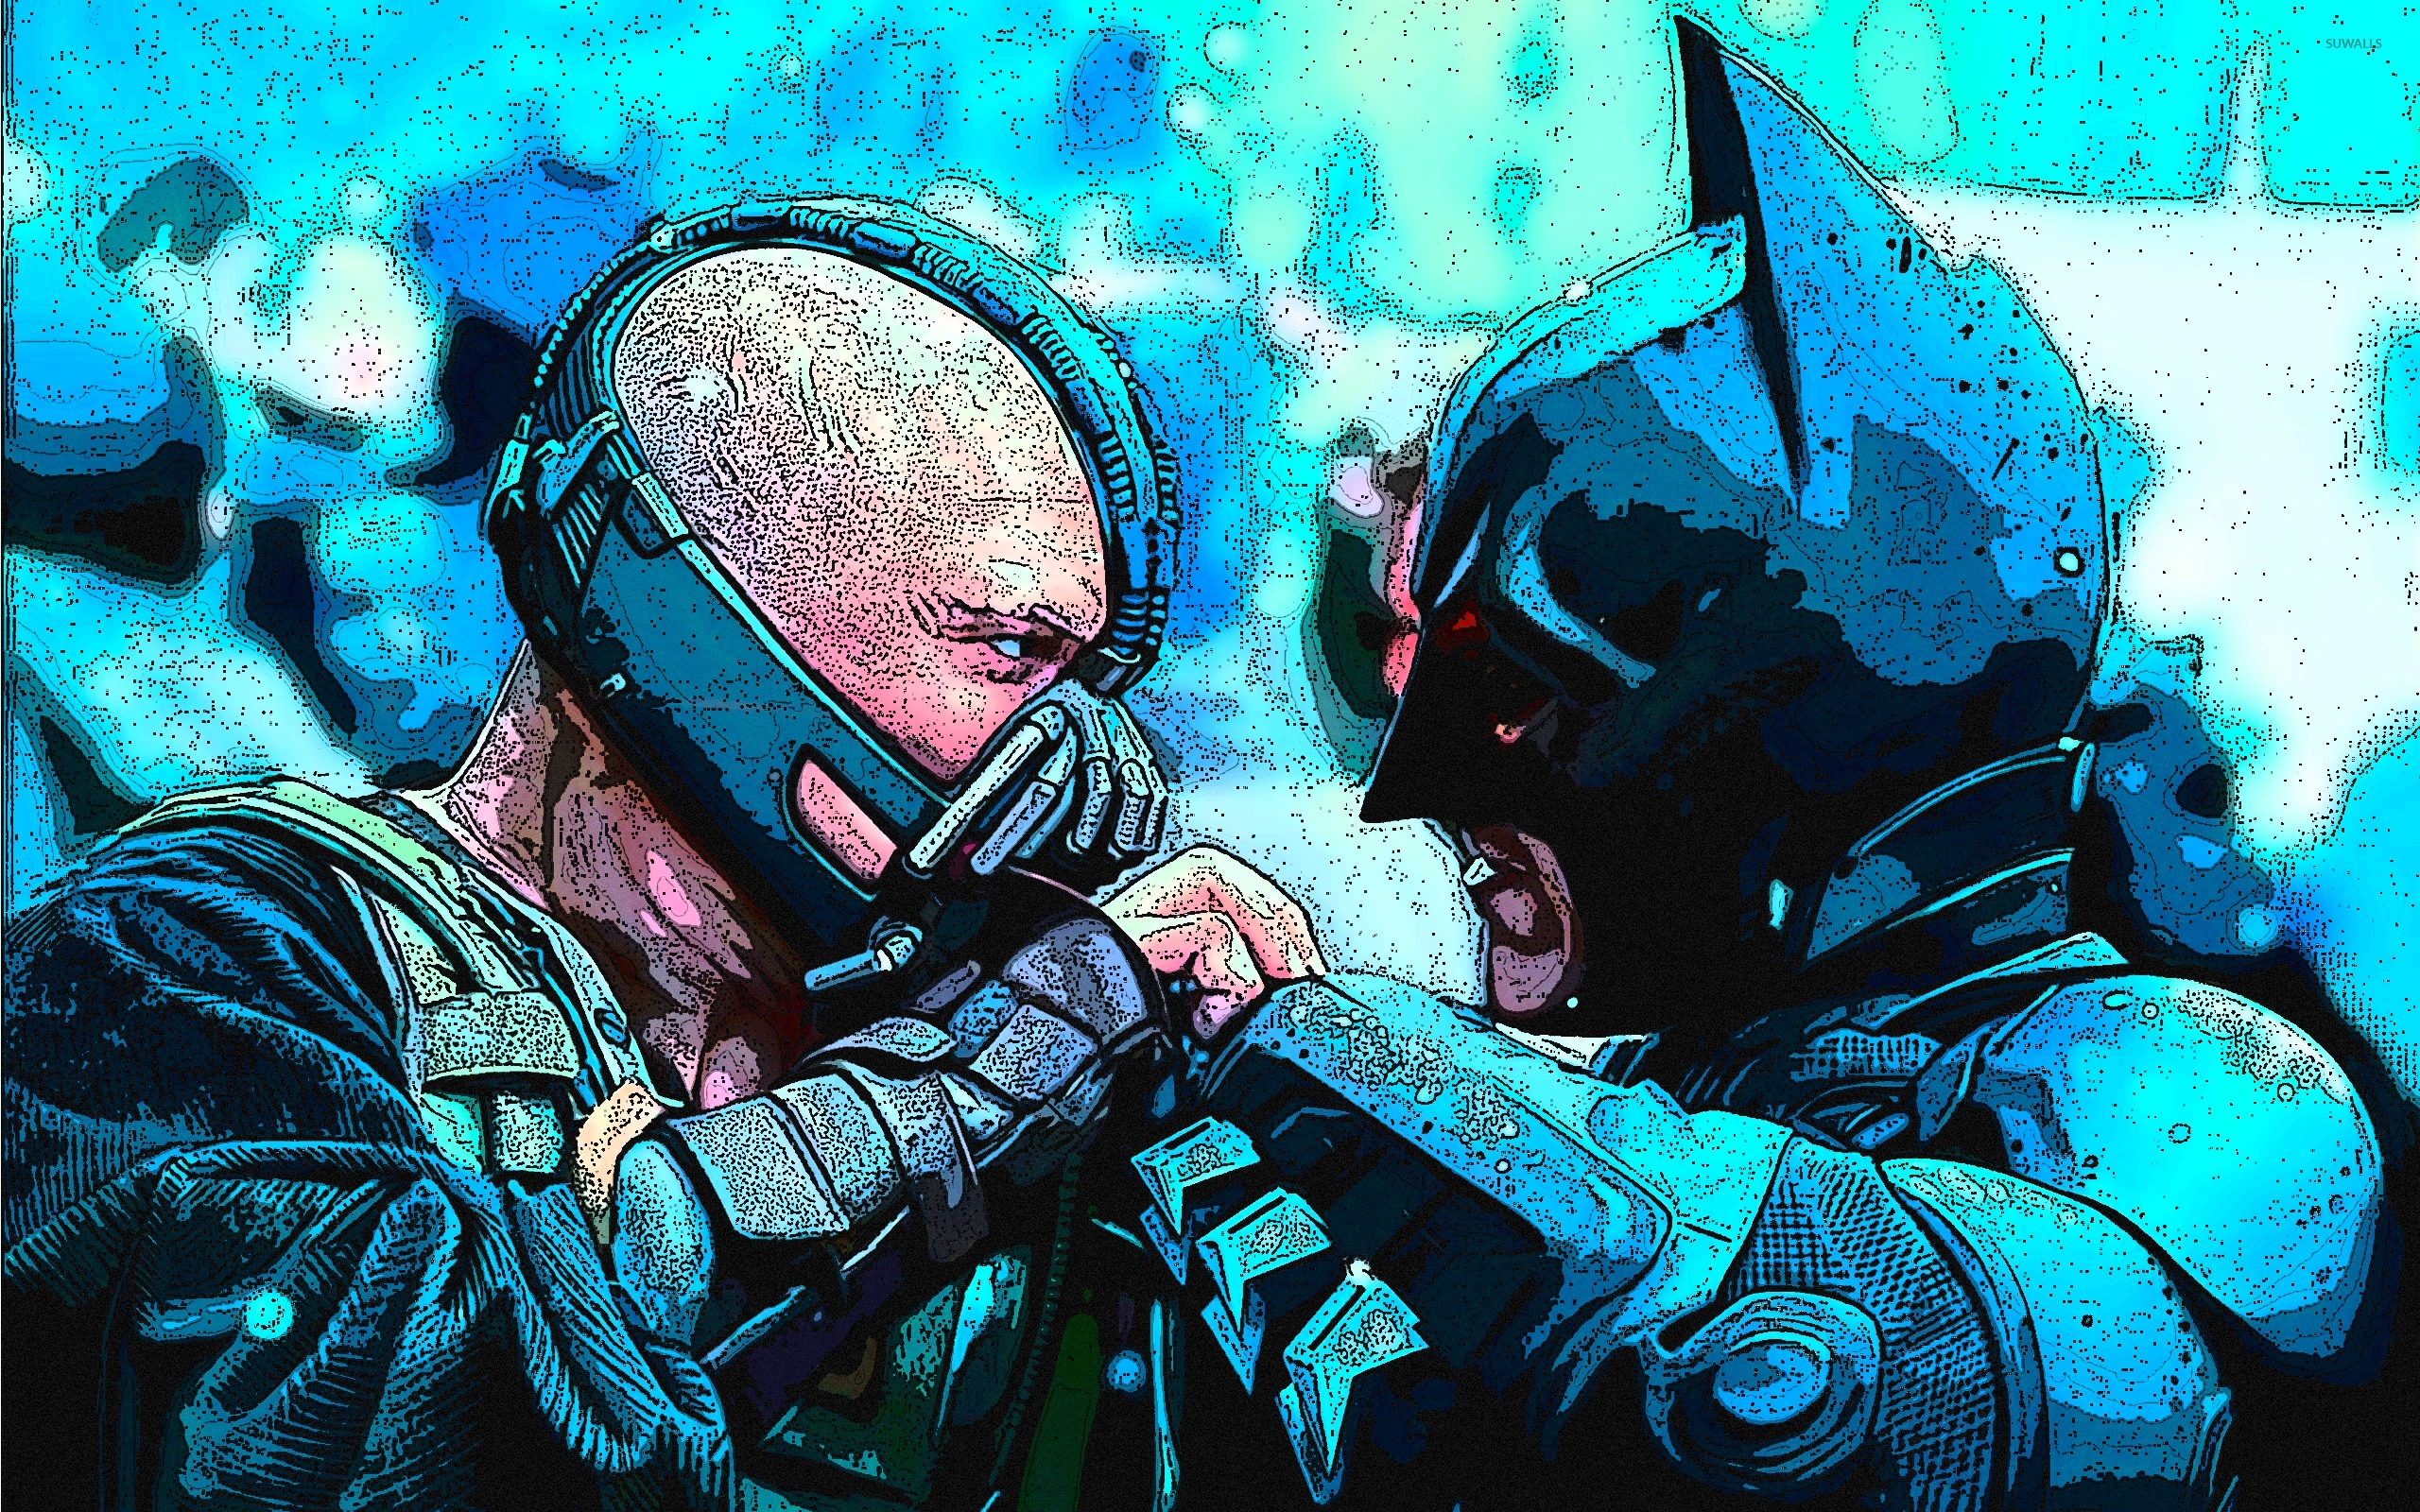 Batman vs Bane - The Dark Knight Rises wallpaper - Movie